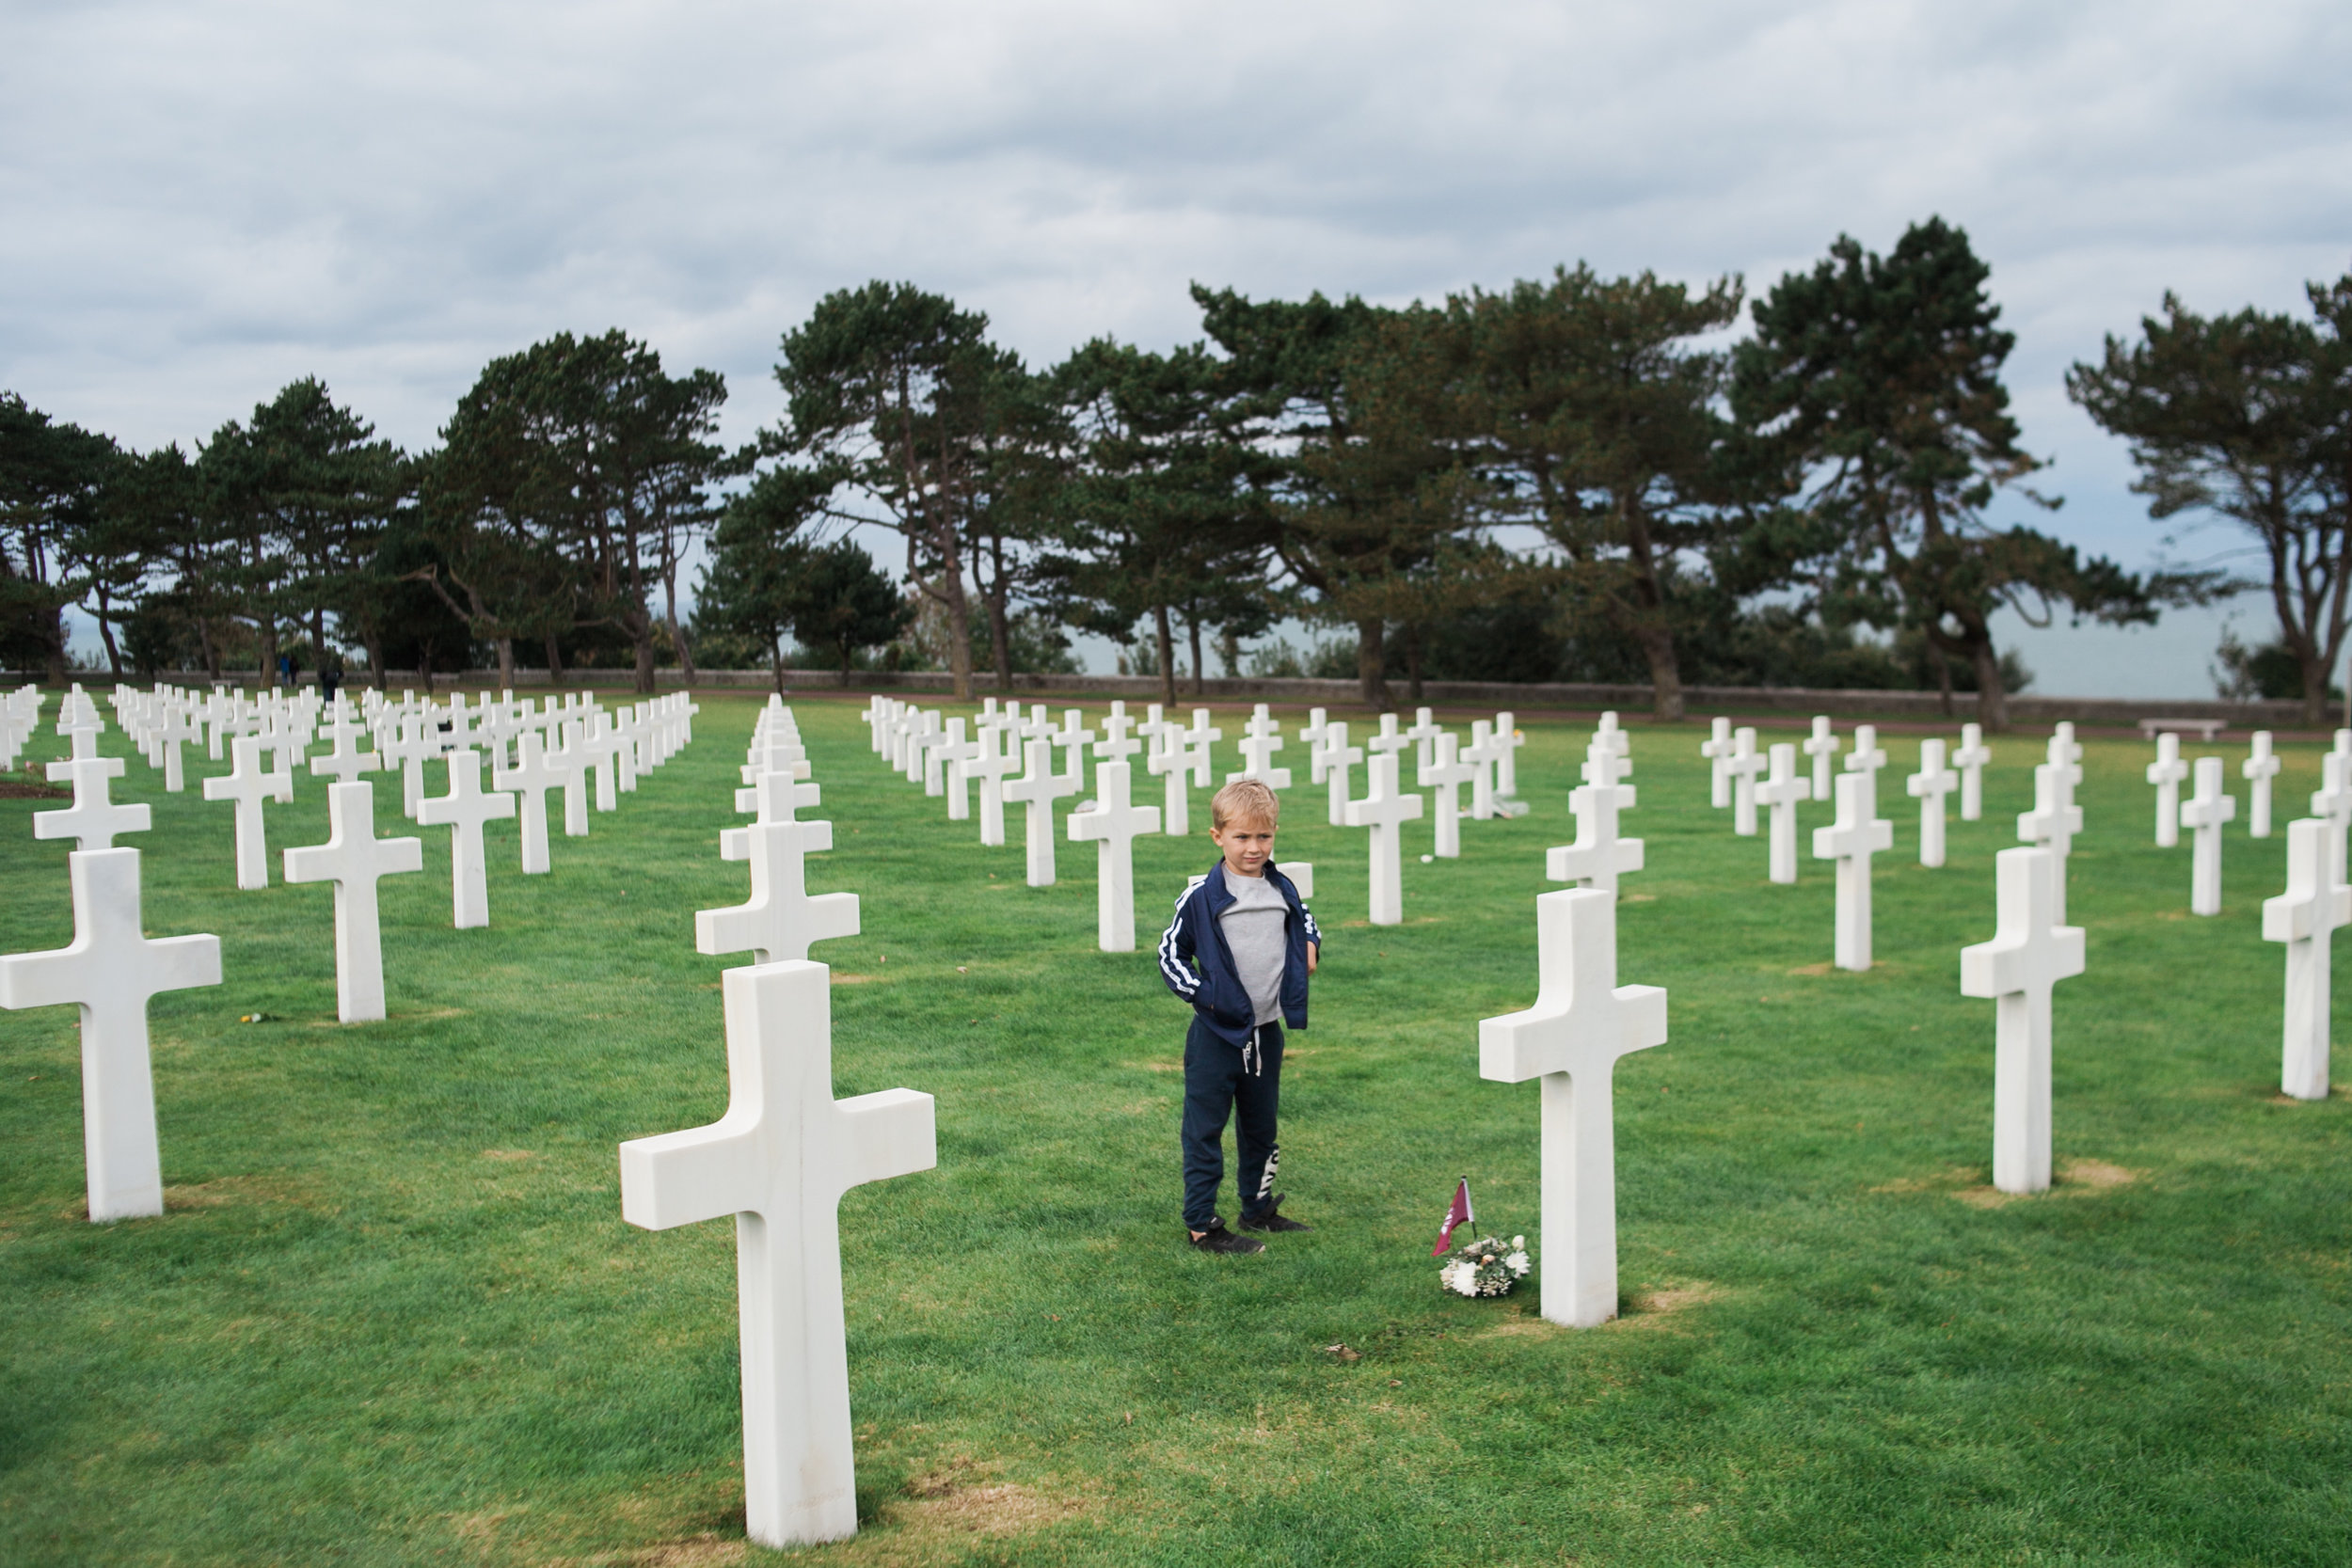 normandy (2 of 3).jpg